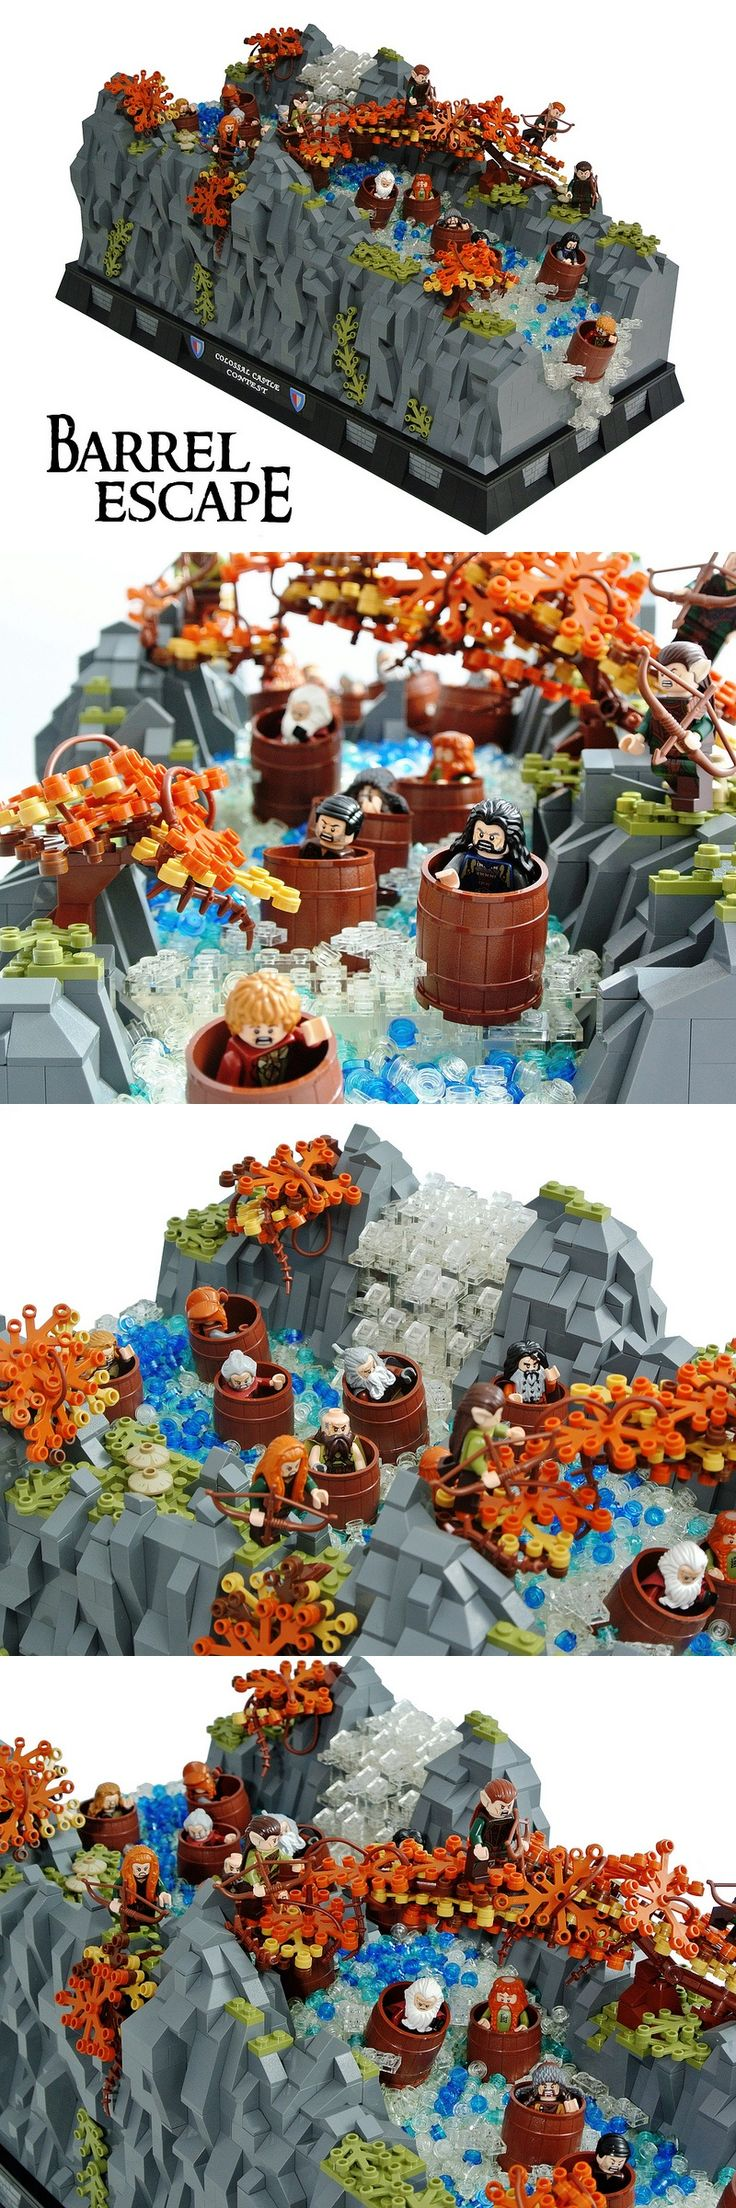 Barrel Escape #LEGO #LOTR